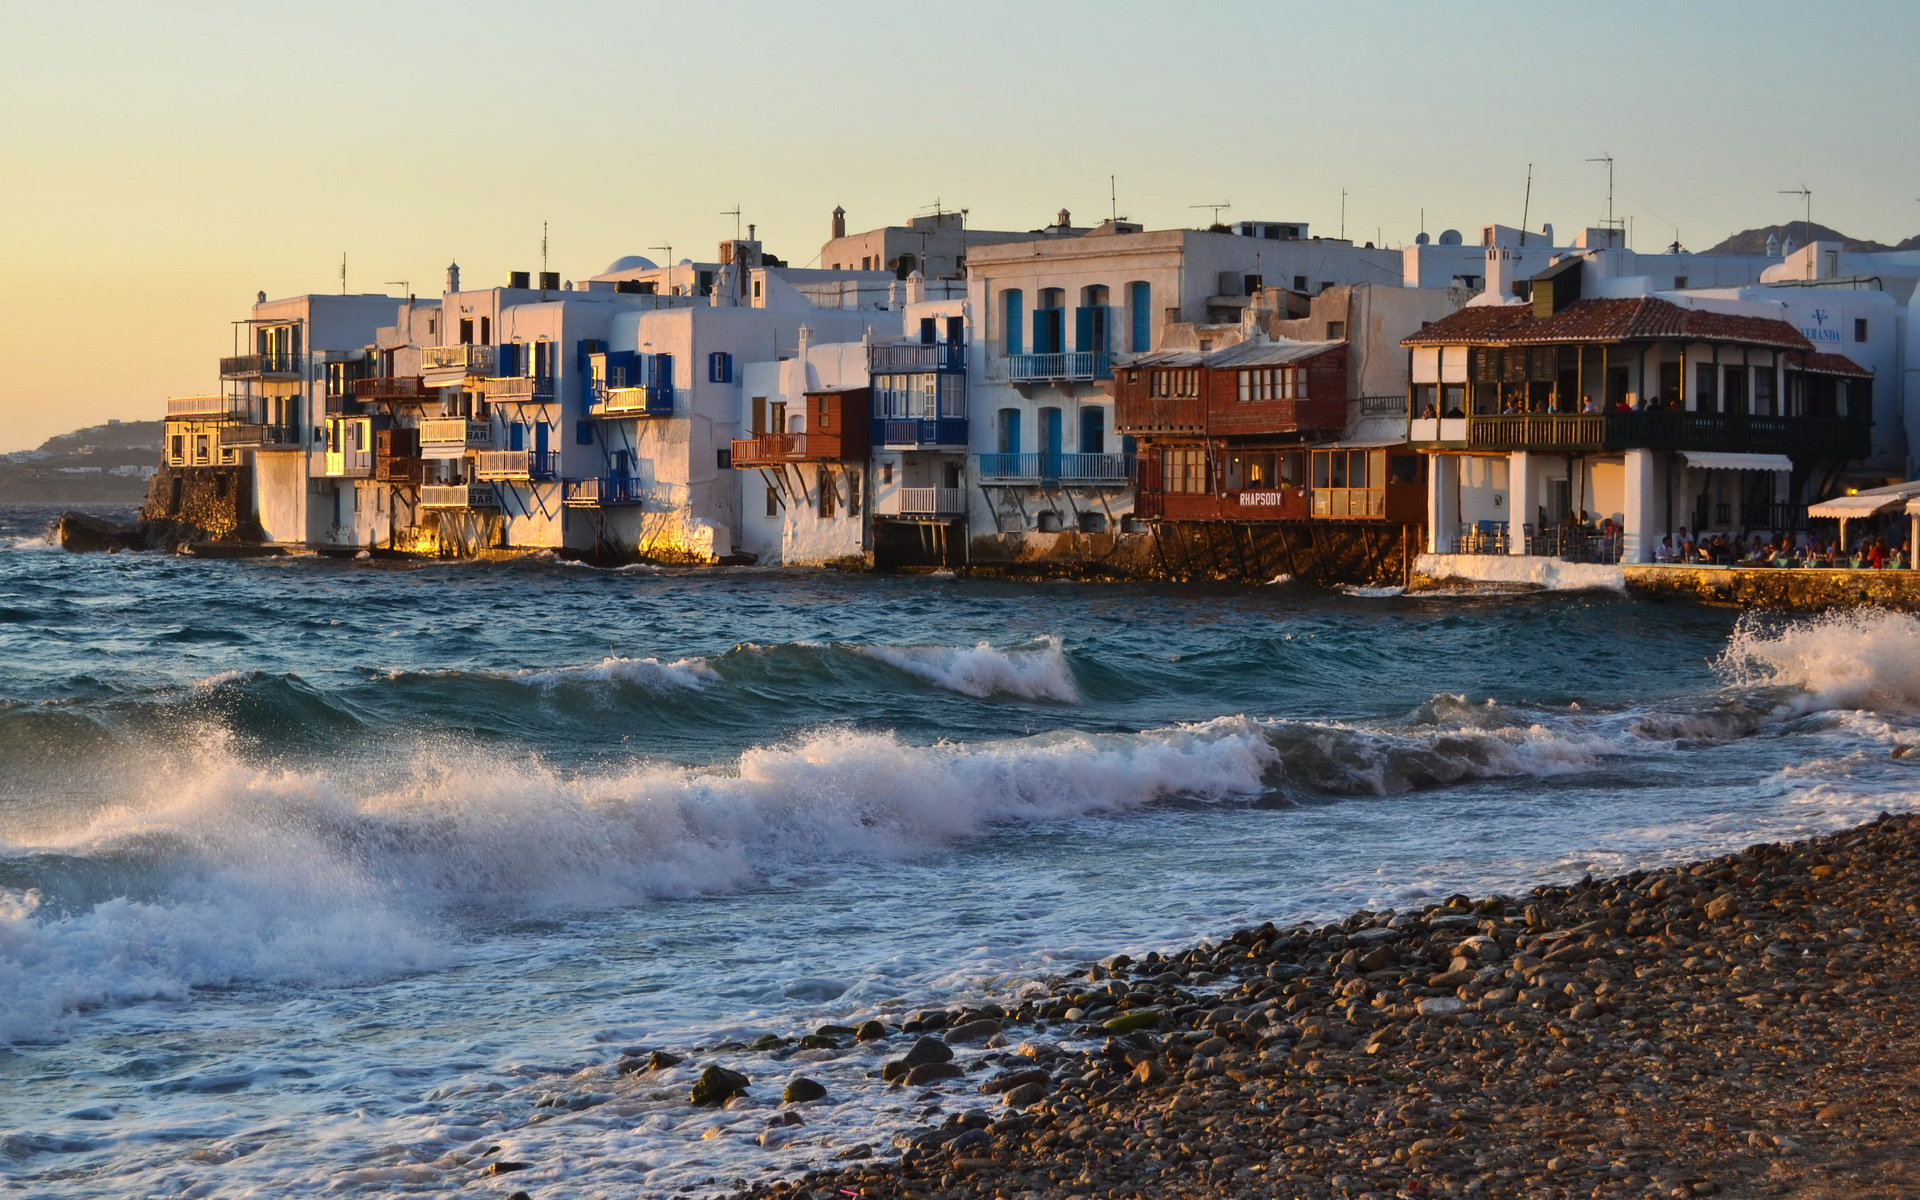 Greece Mykonos buildings resort villa houses tropical nature beaches waves ocean sea